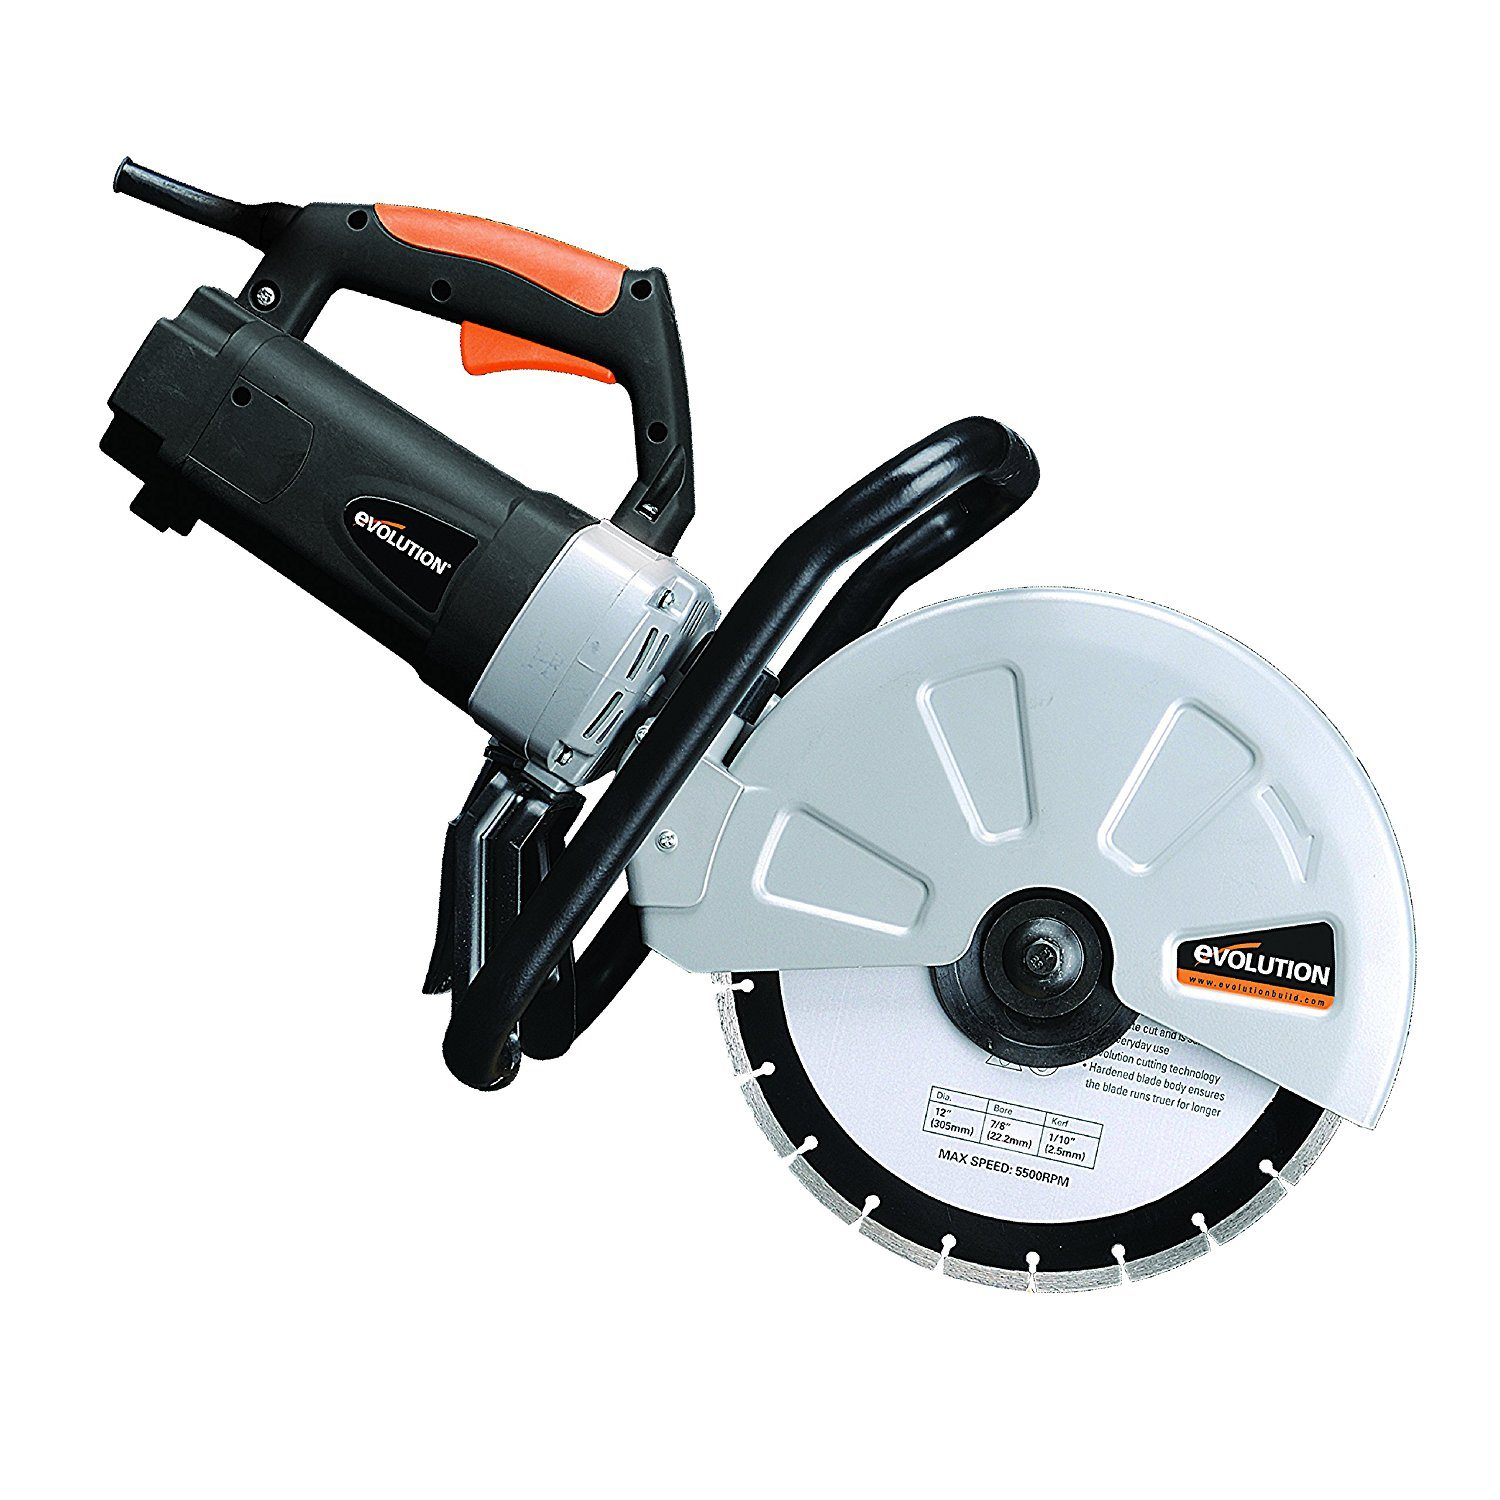 Evolution 2400W Electric Concrete Saw